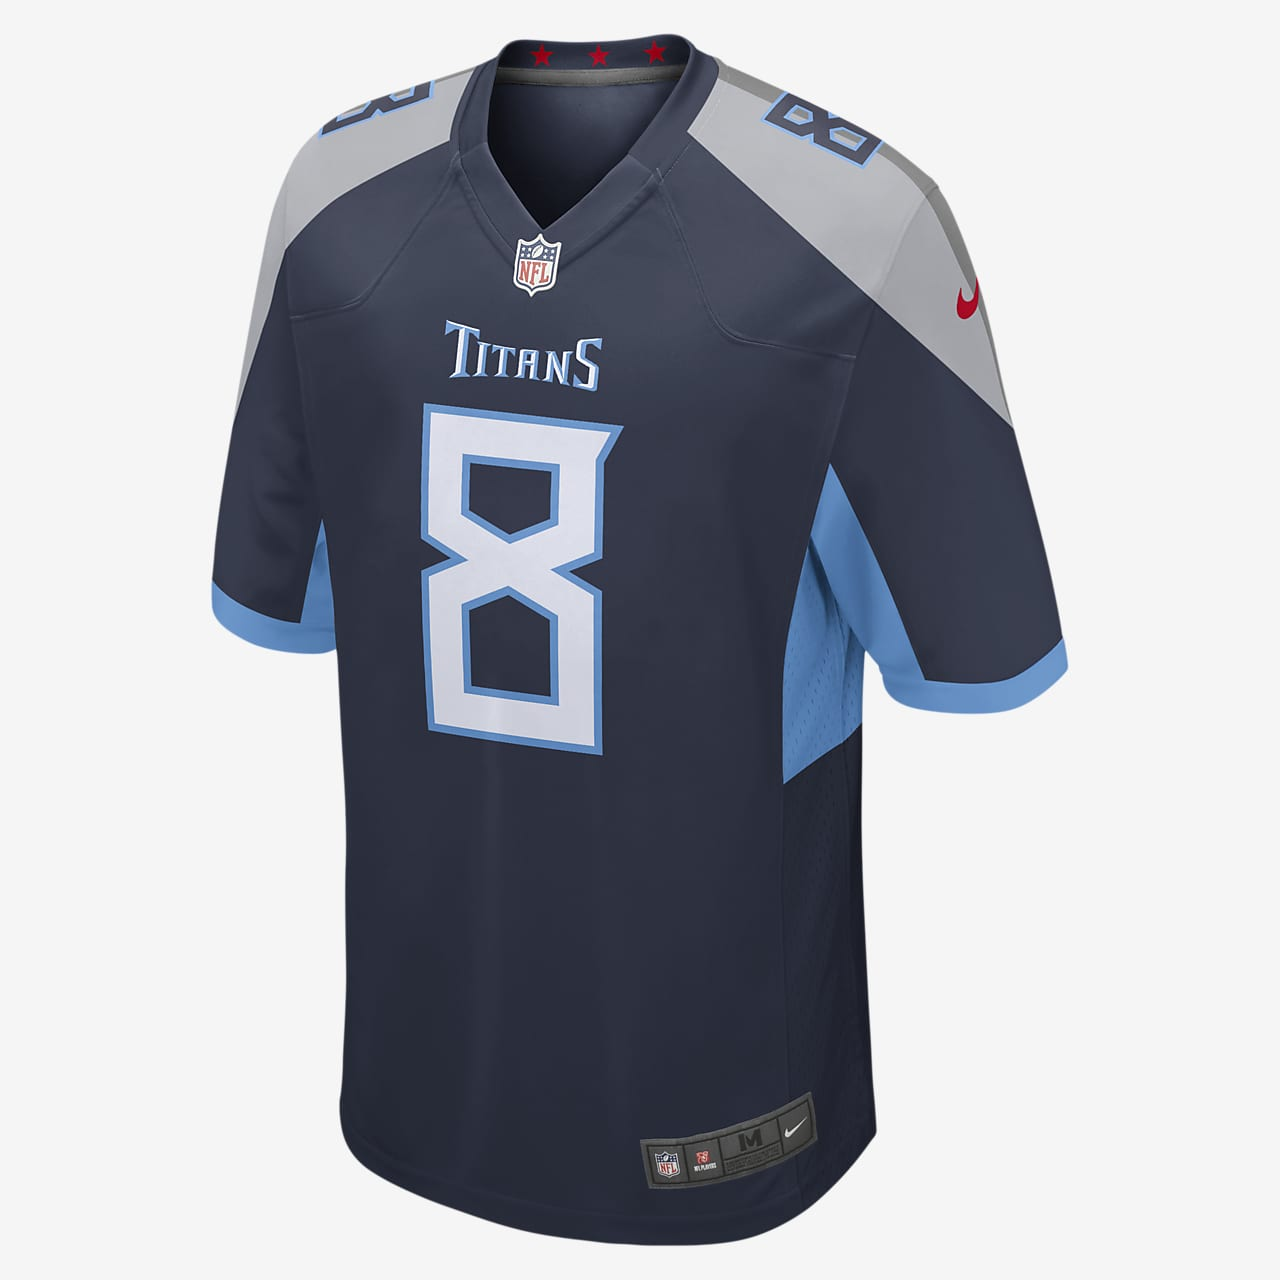 NFL Tennessee Titans Game Jersey (Marcus Mariota) Men's American Football Jersey